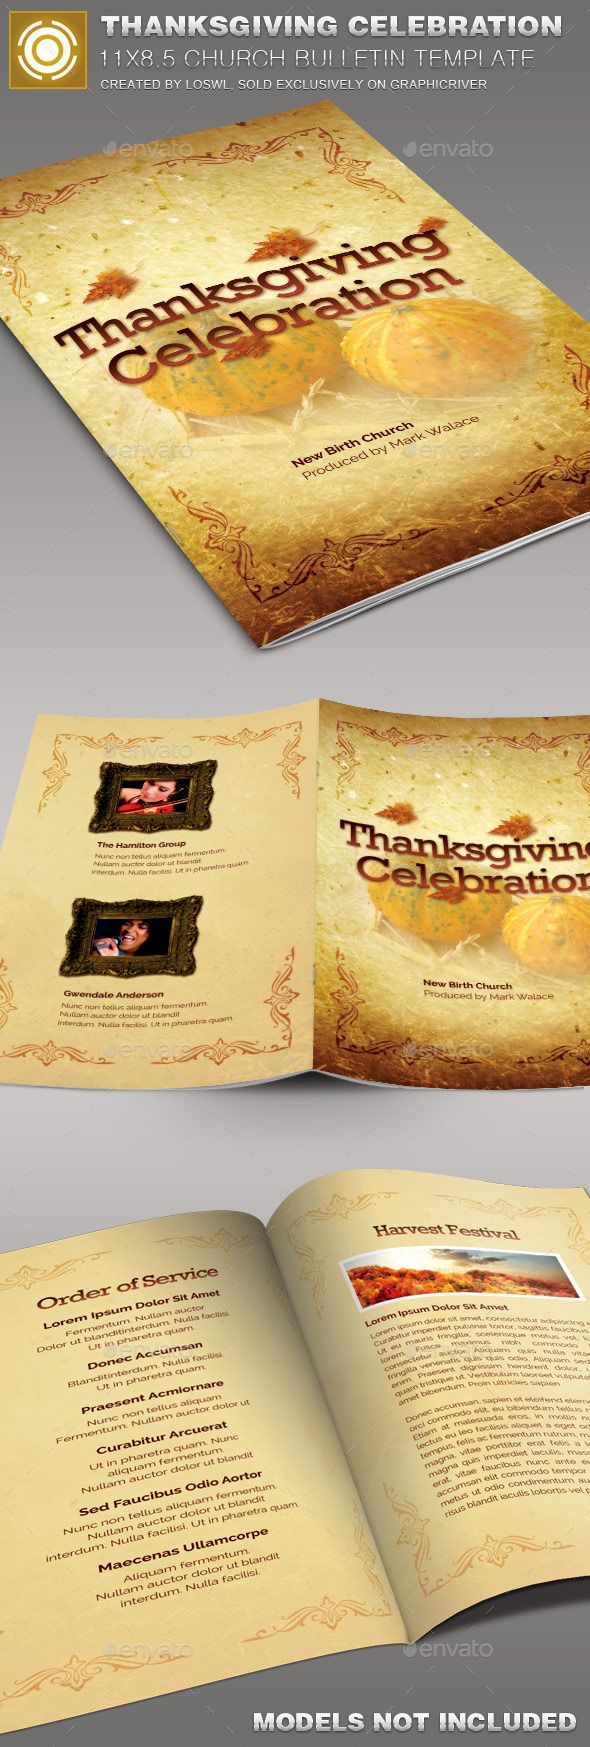 Thanksgiving Celebration  Church Bulletin Template by loswl Thanksgiving CelebrationChurch Bulletin Template issold exclusively on graphicriver, it is especially designed for Churches butcan